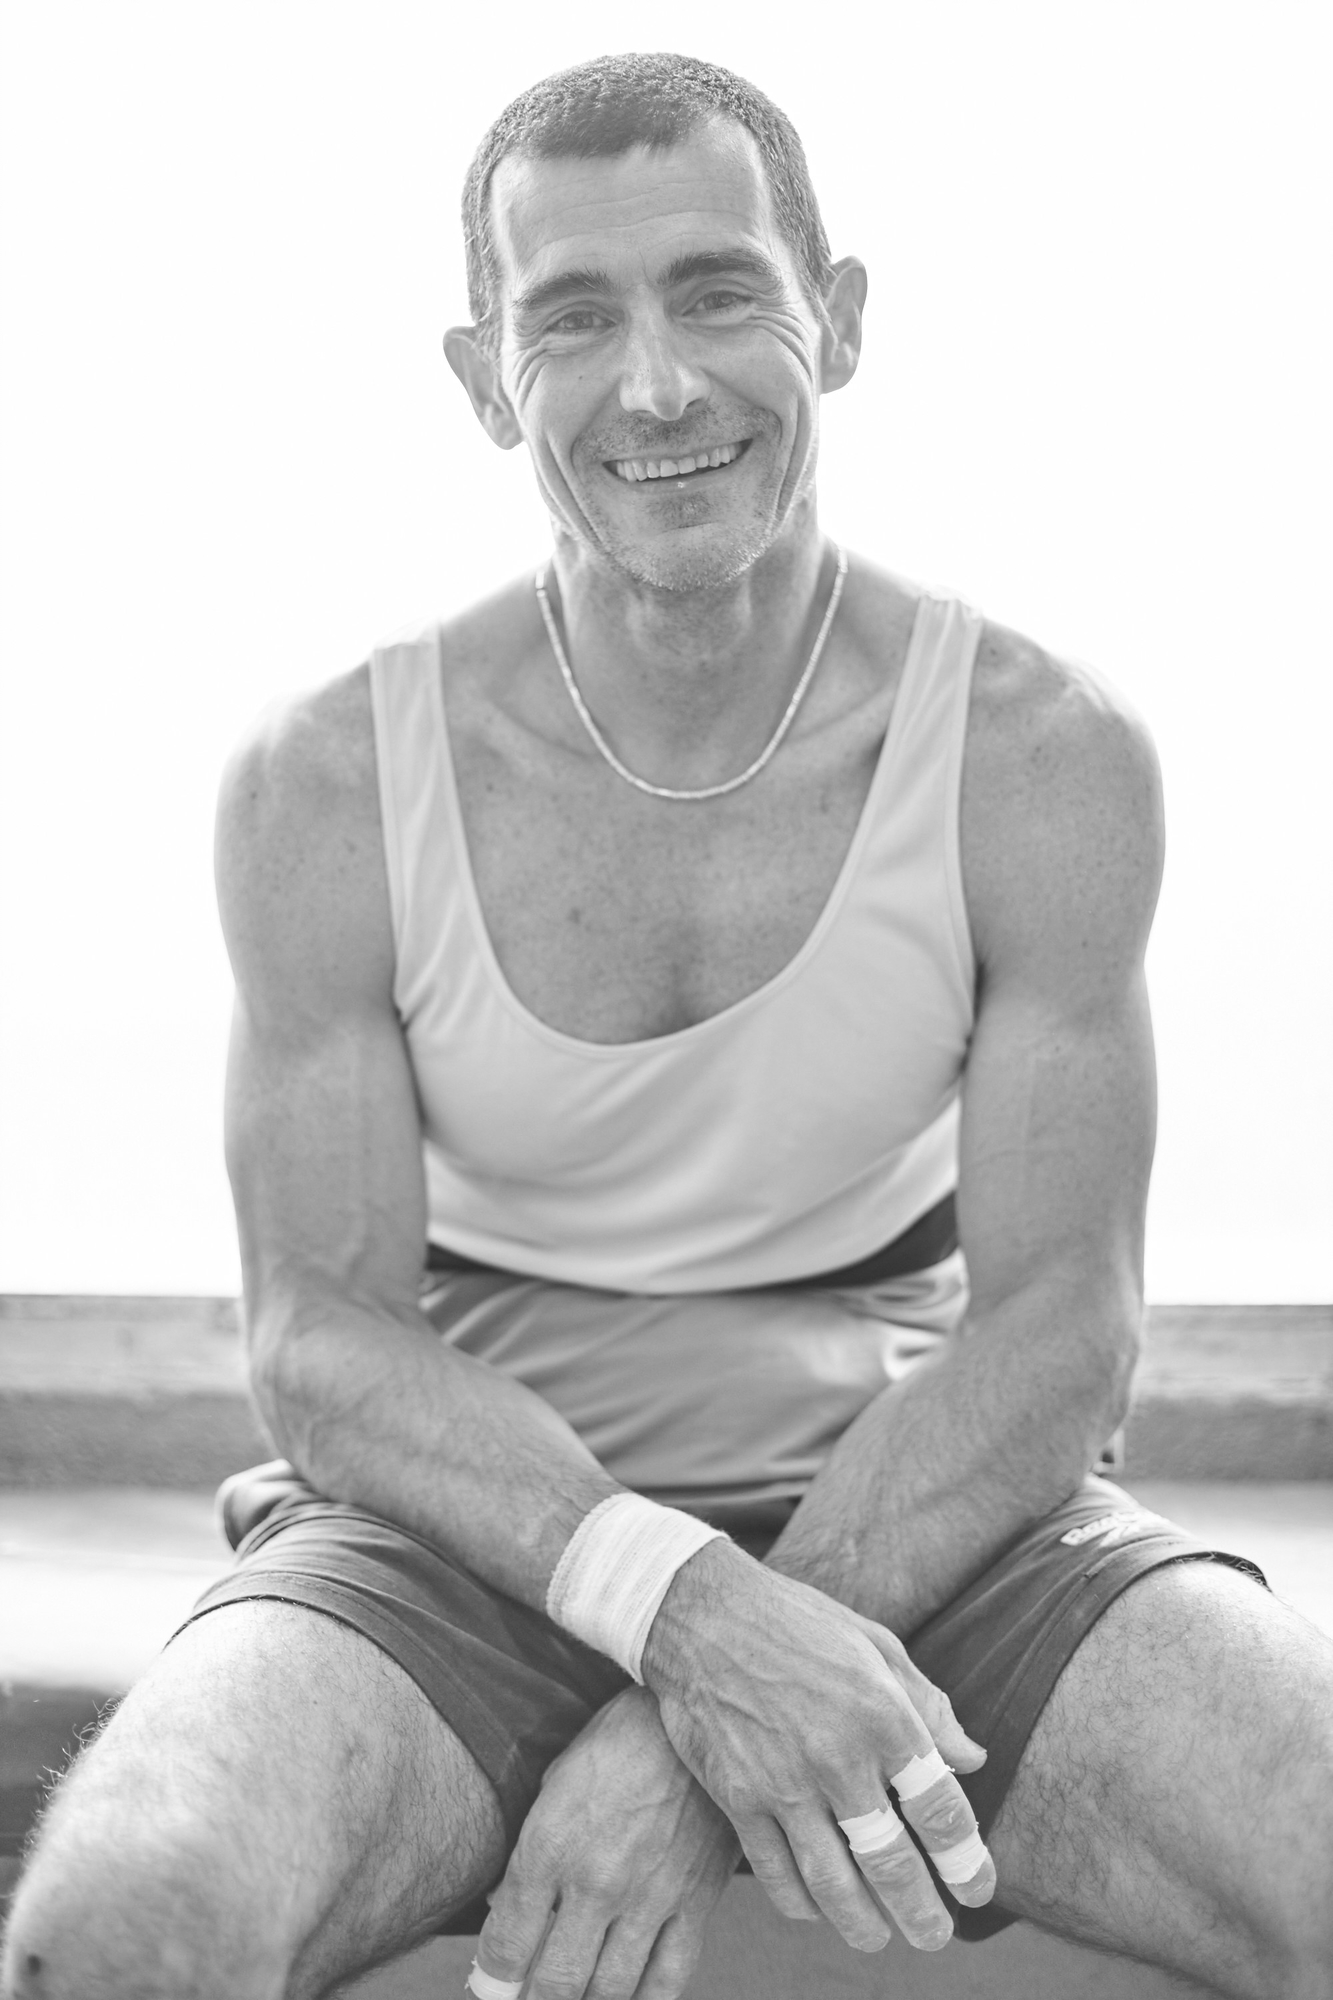 A climber smiling with his arms crossed on his legs.